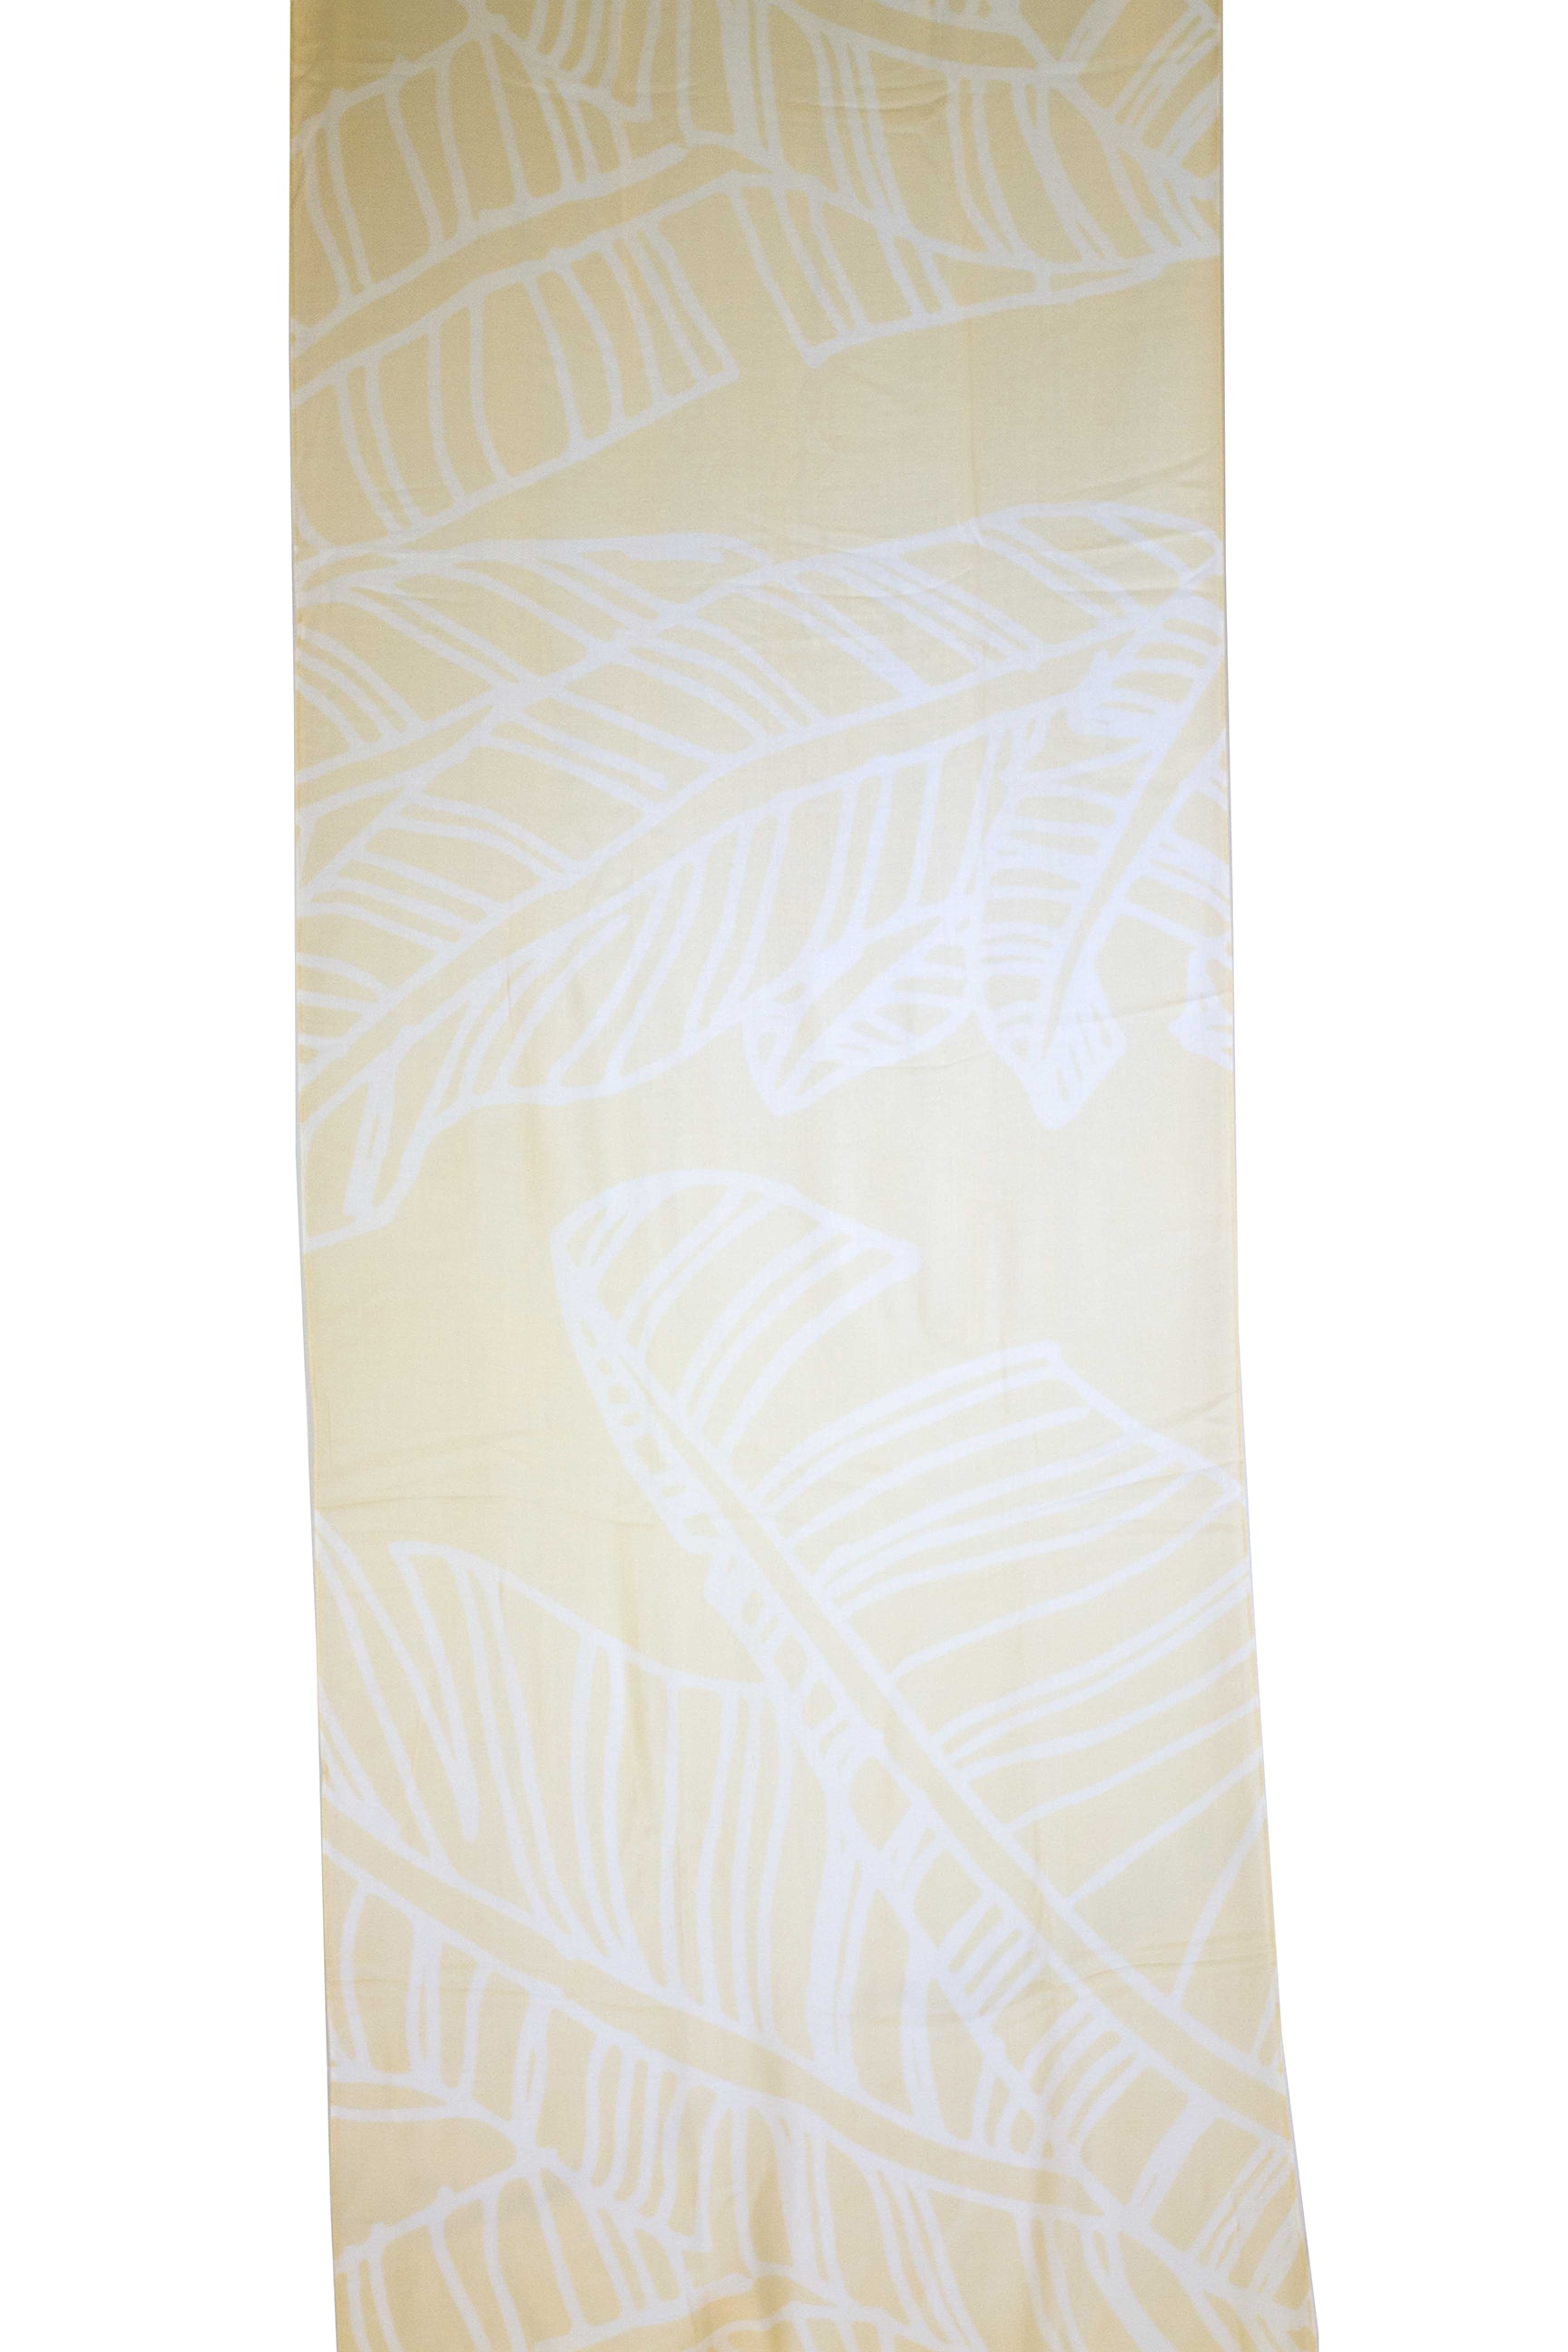 Mai'a White/Pineapple Yellow Women's Scarf